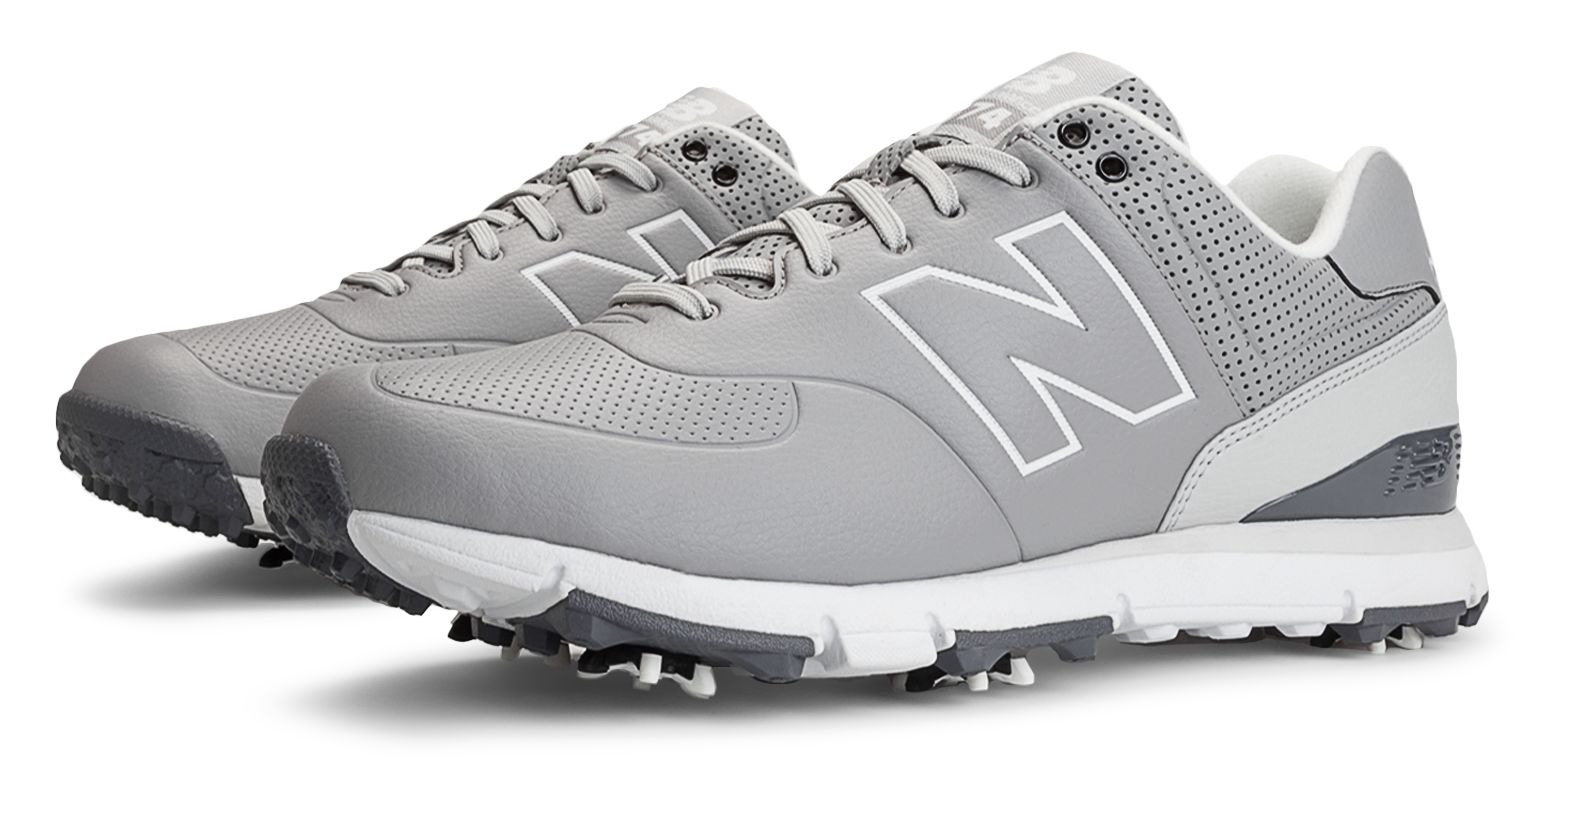 New Balance Golf Leather 574 Mens Shoes Grey